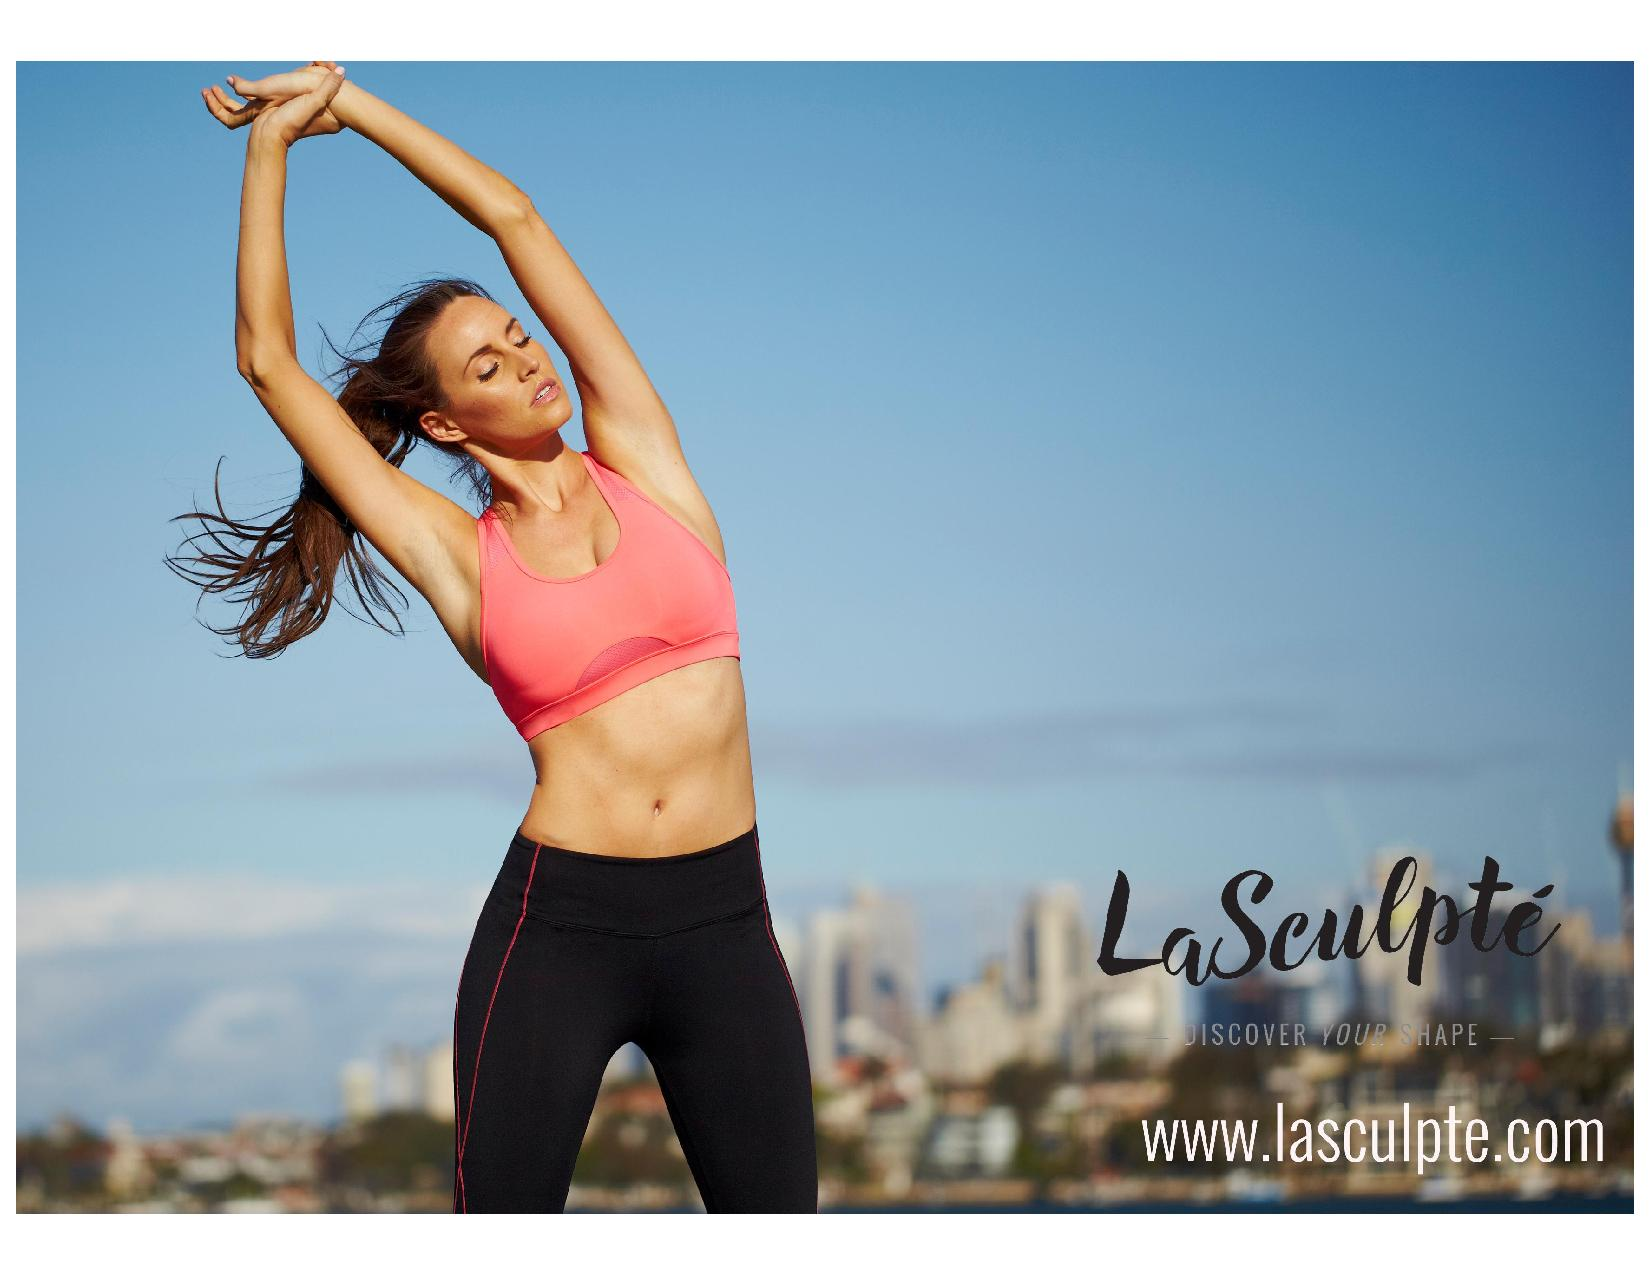 Active lookbook-outdoor images-page-007